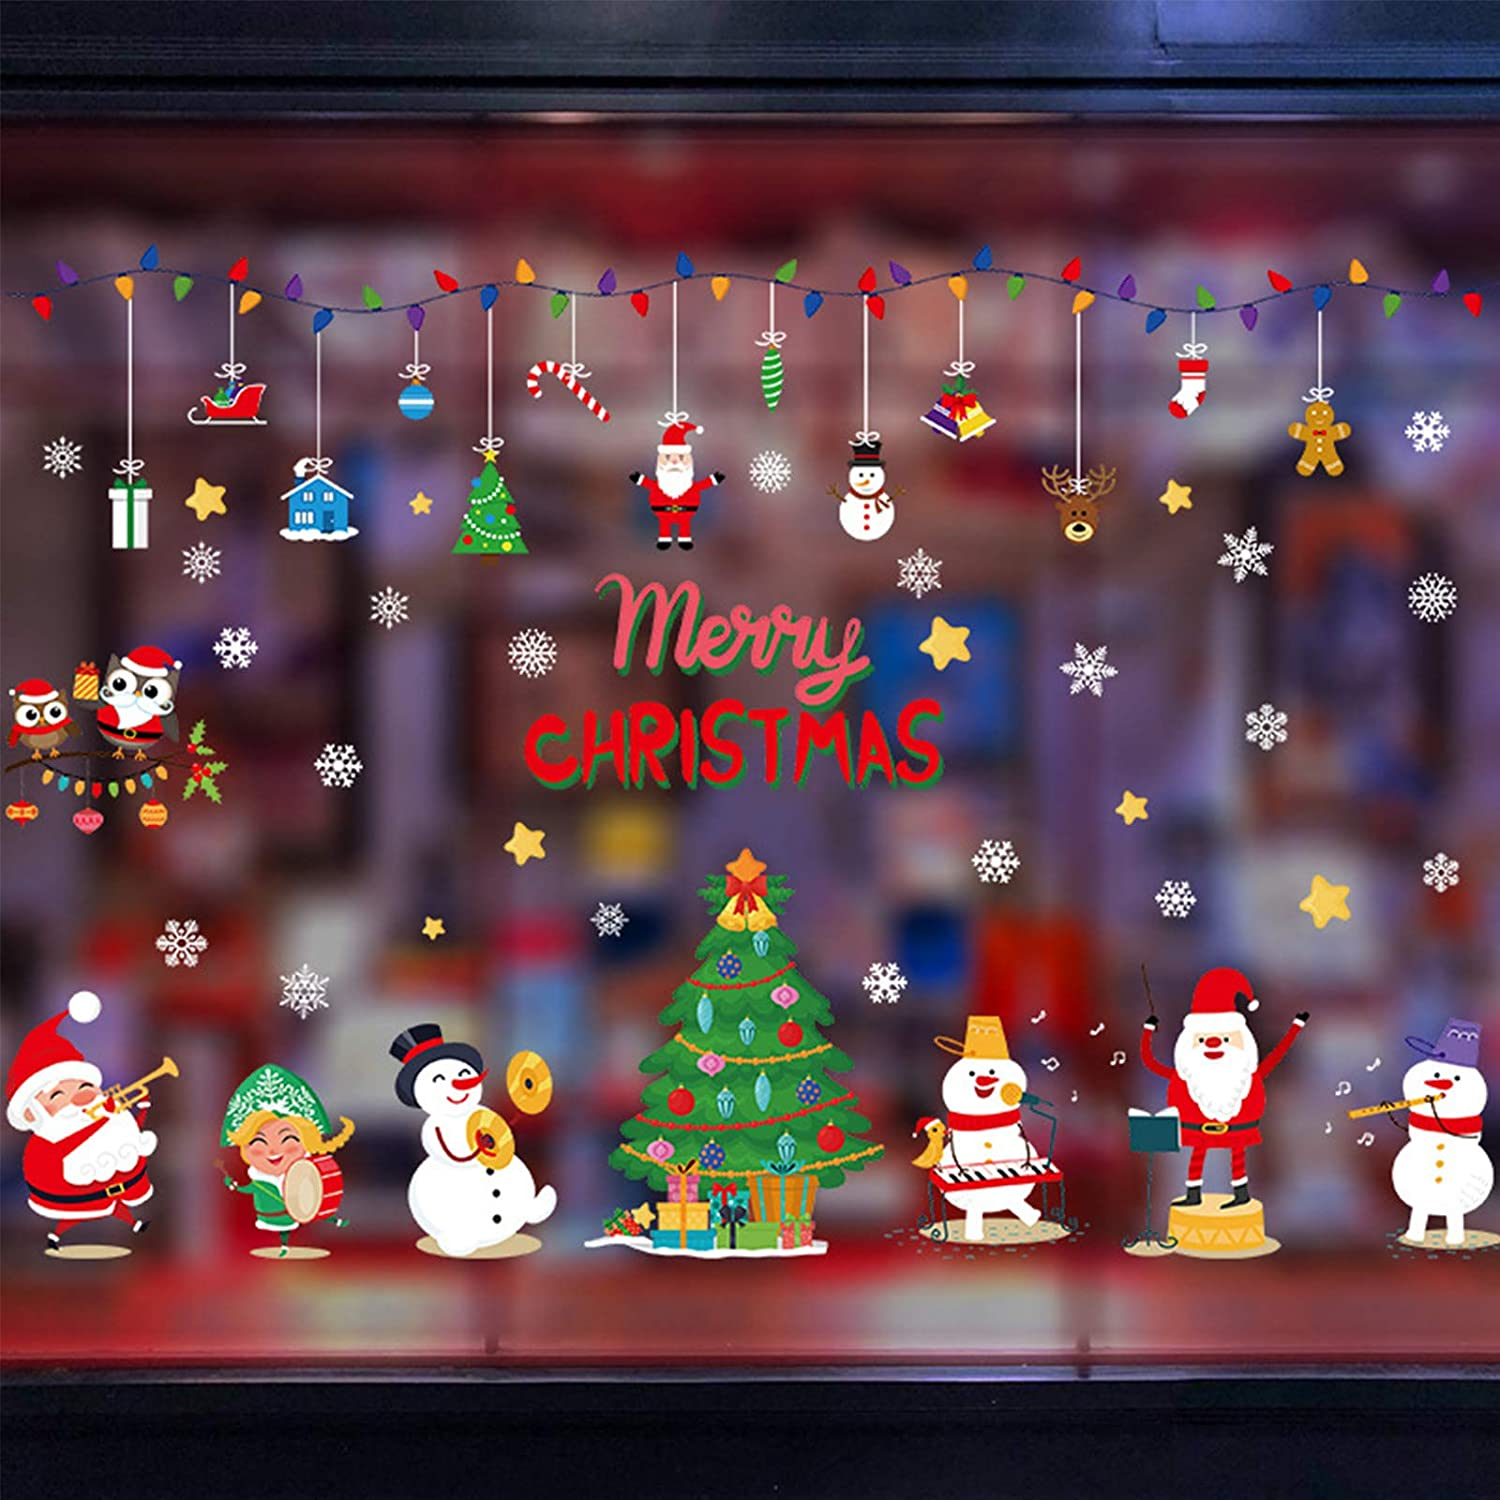 Christmas Decorations Wall Decor, Christmas Tree Snowman Santa Claus Wall Decals for Living Room Bedroom Classroom Windows Stores Christmas Ornament